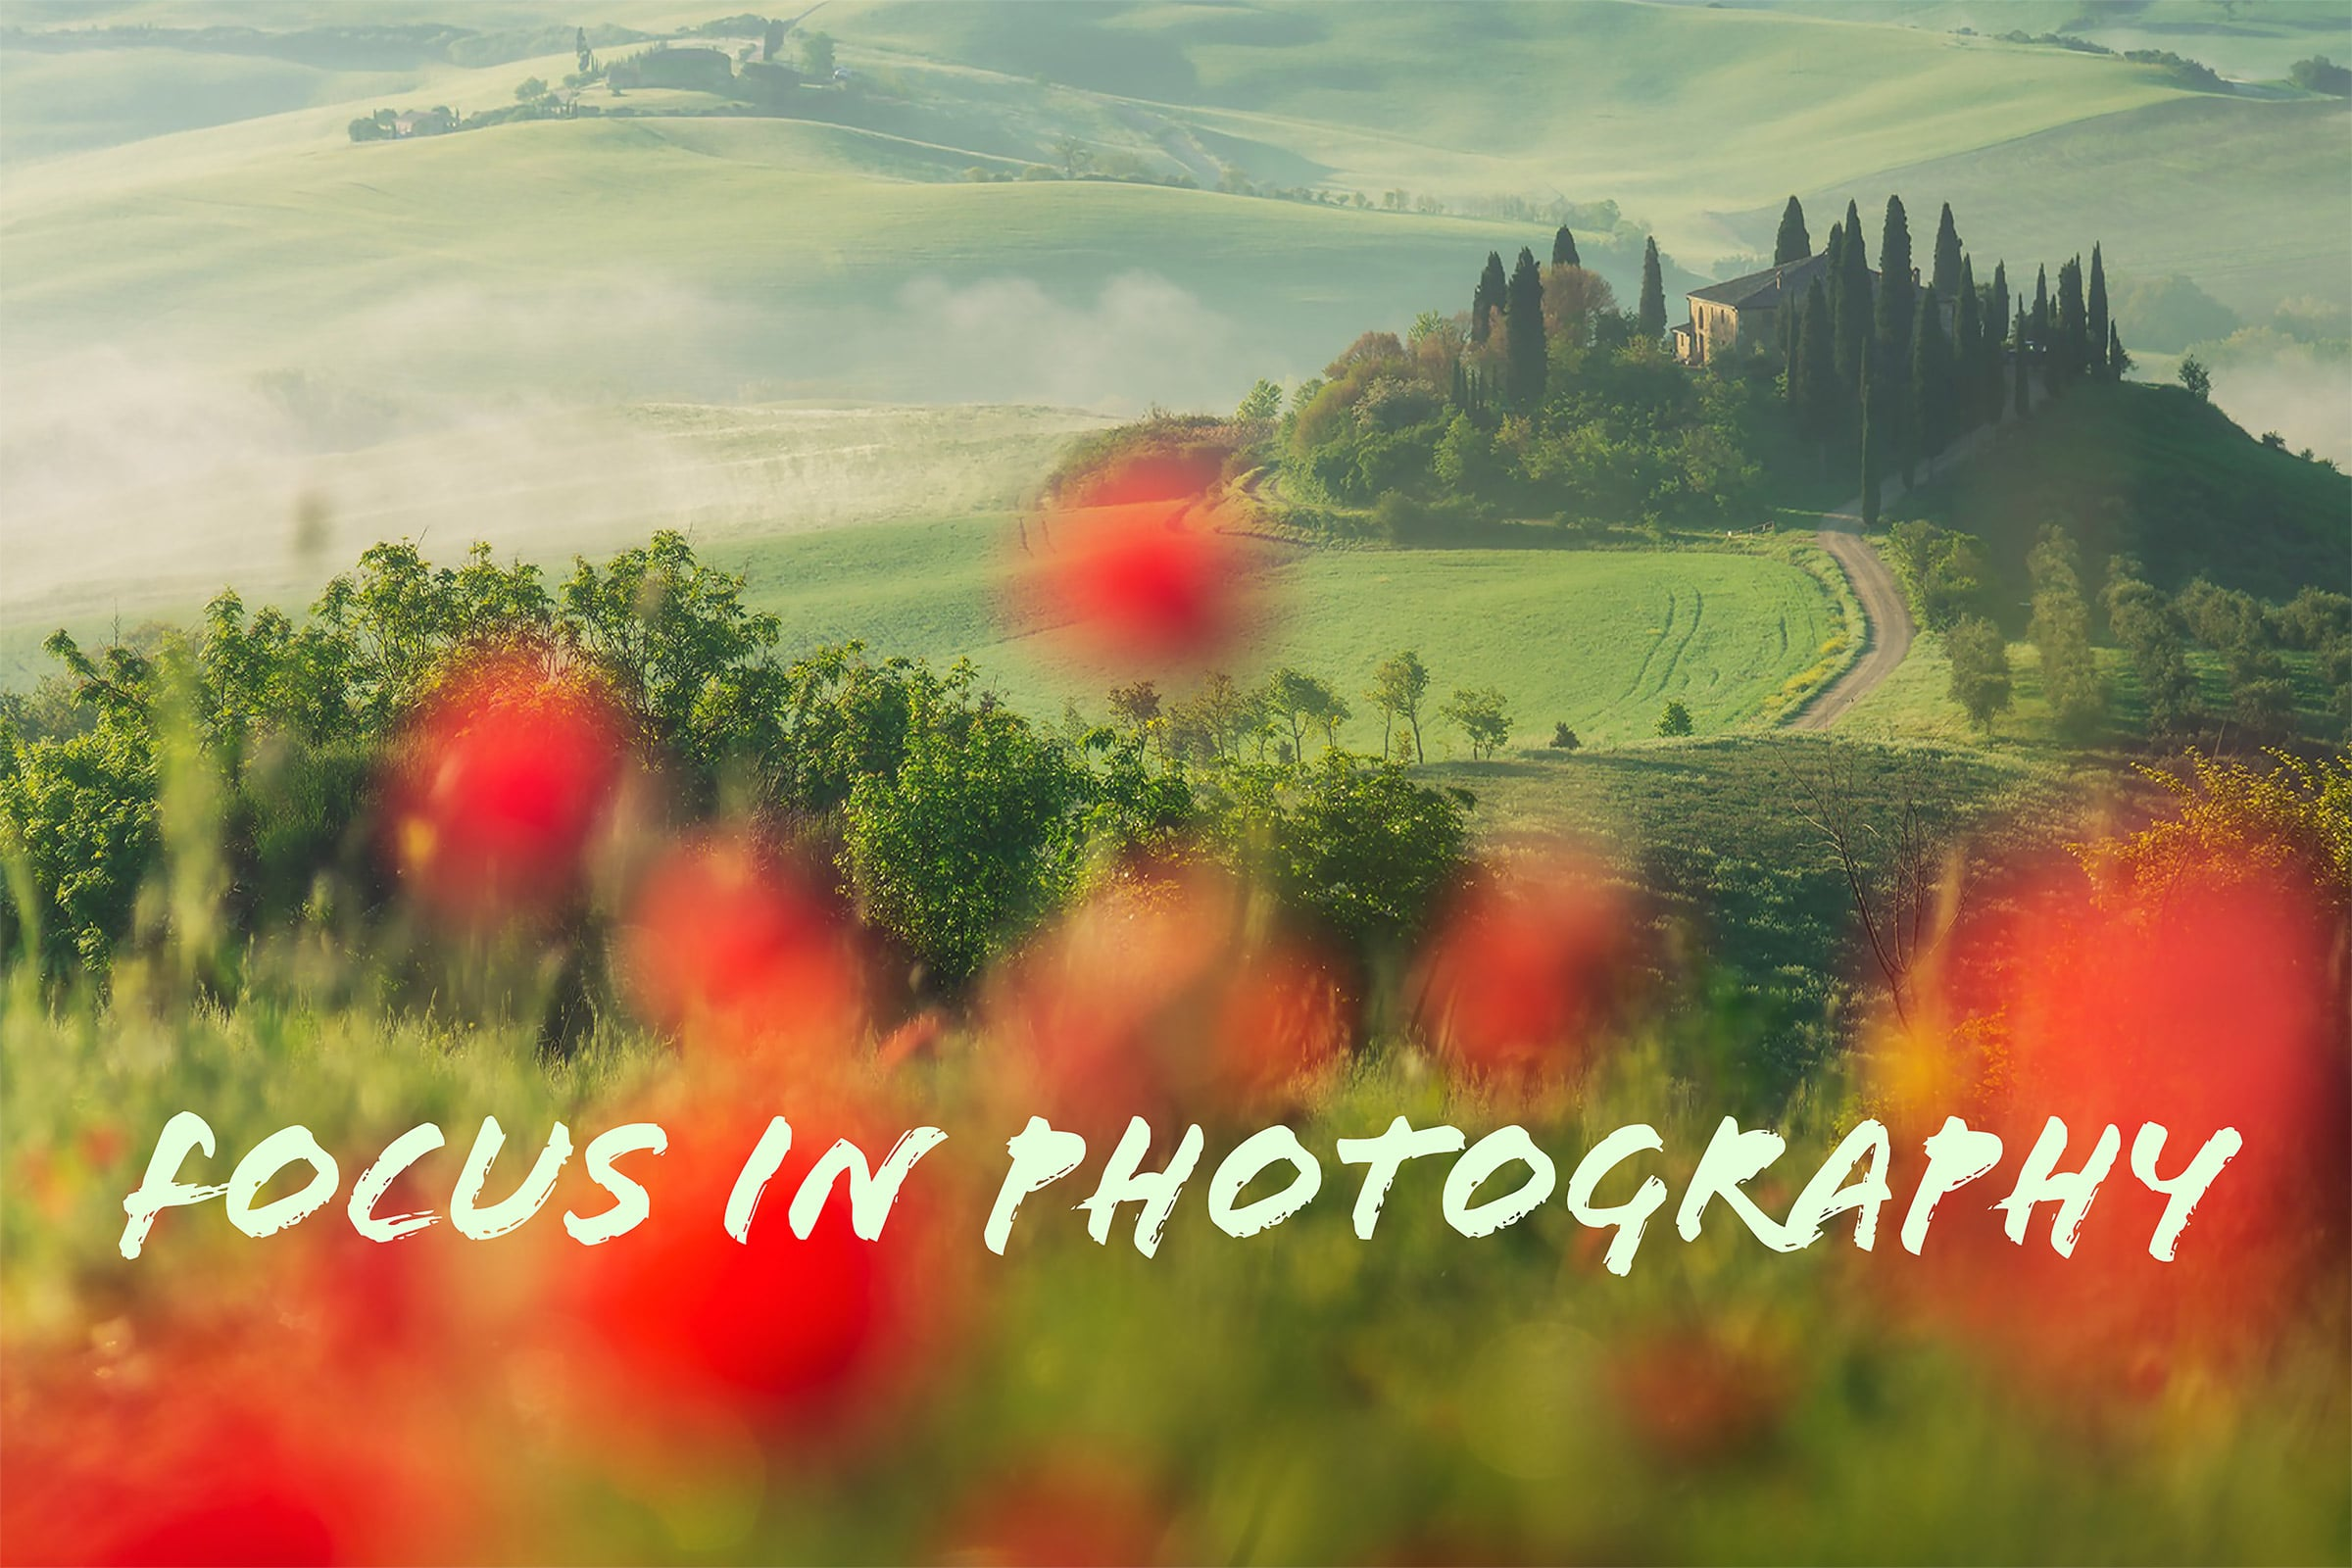 How to focus in photography article